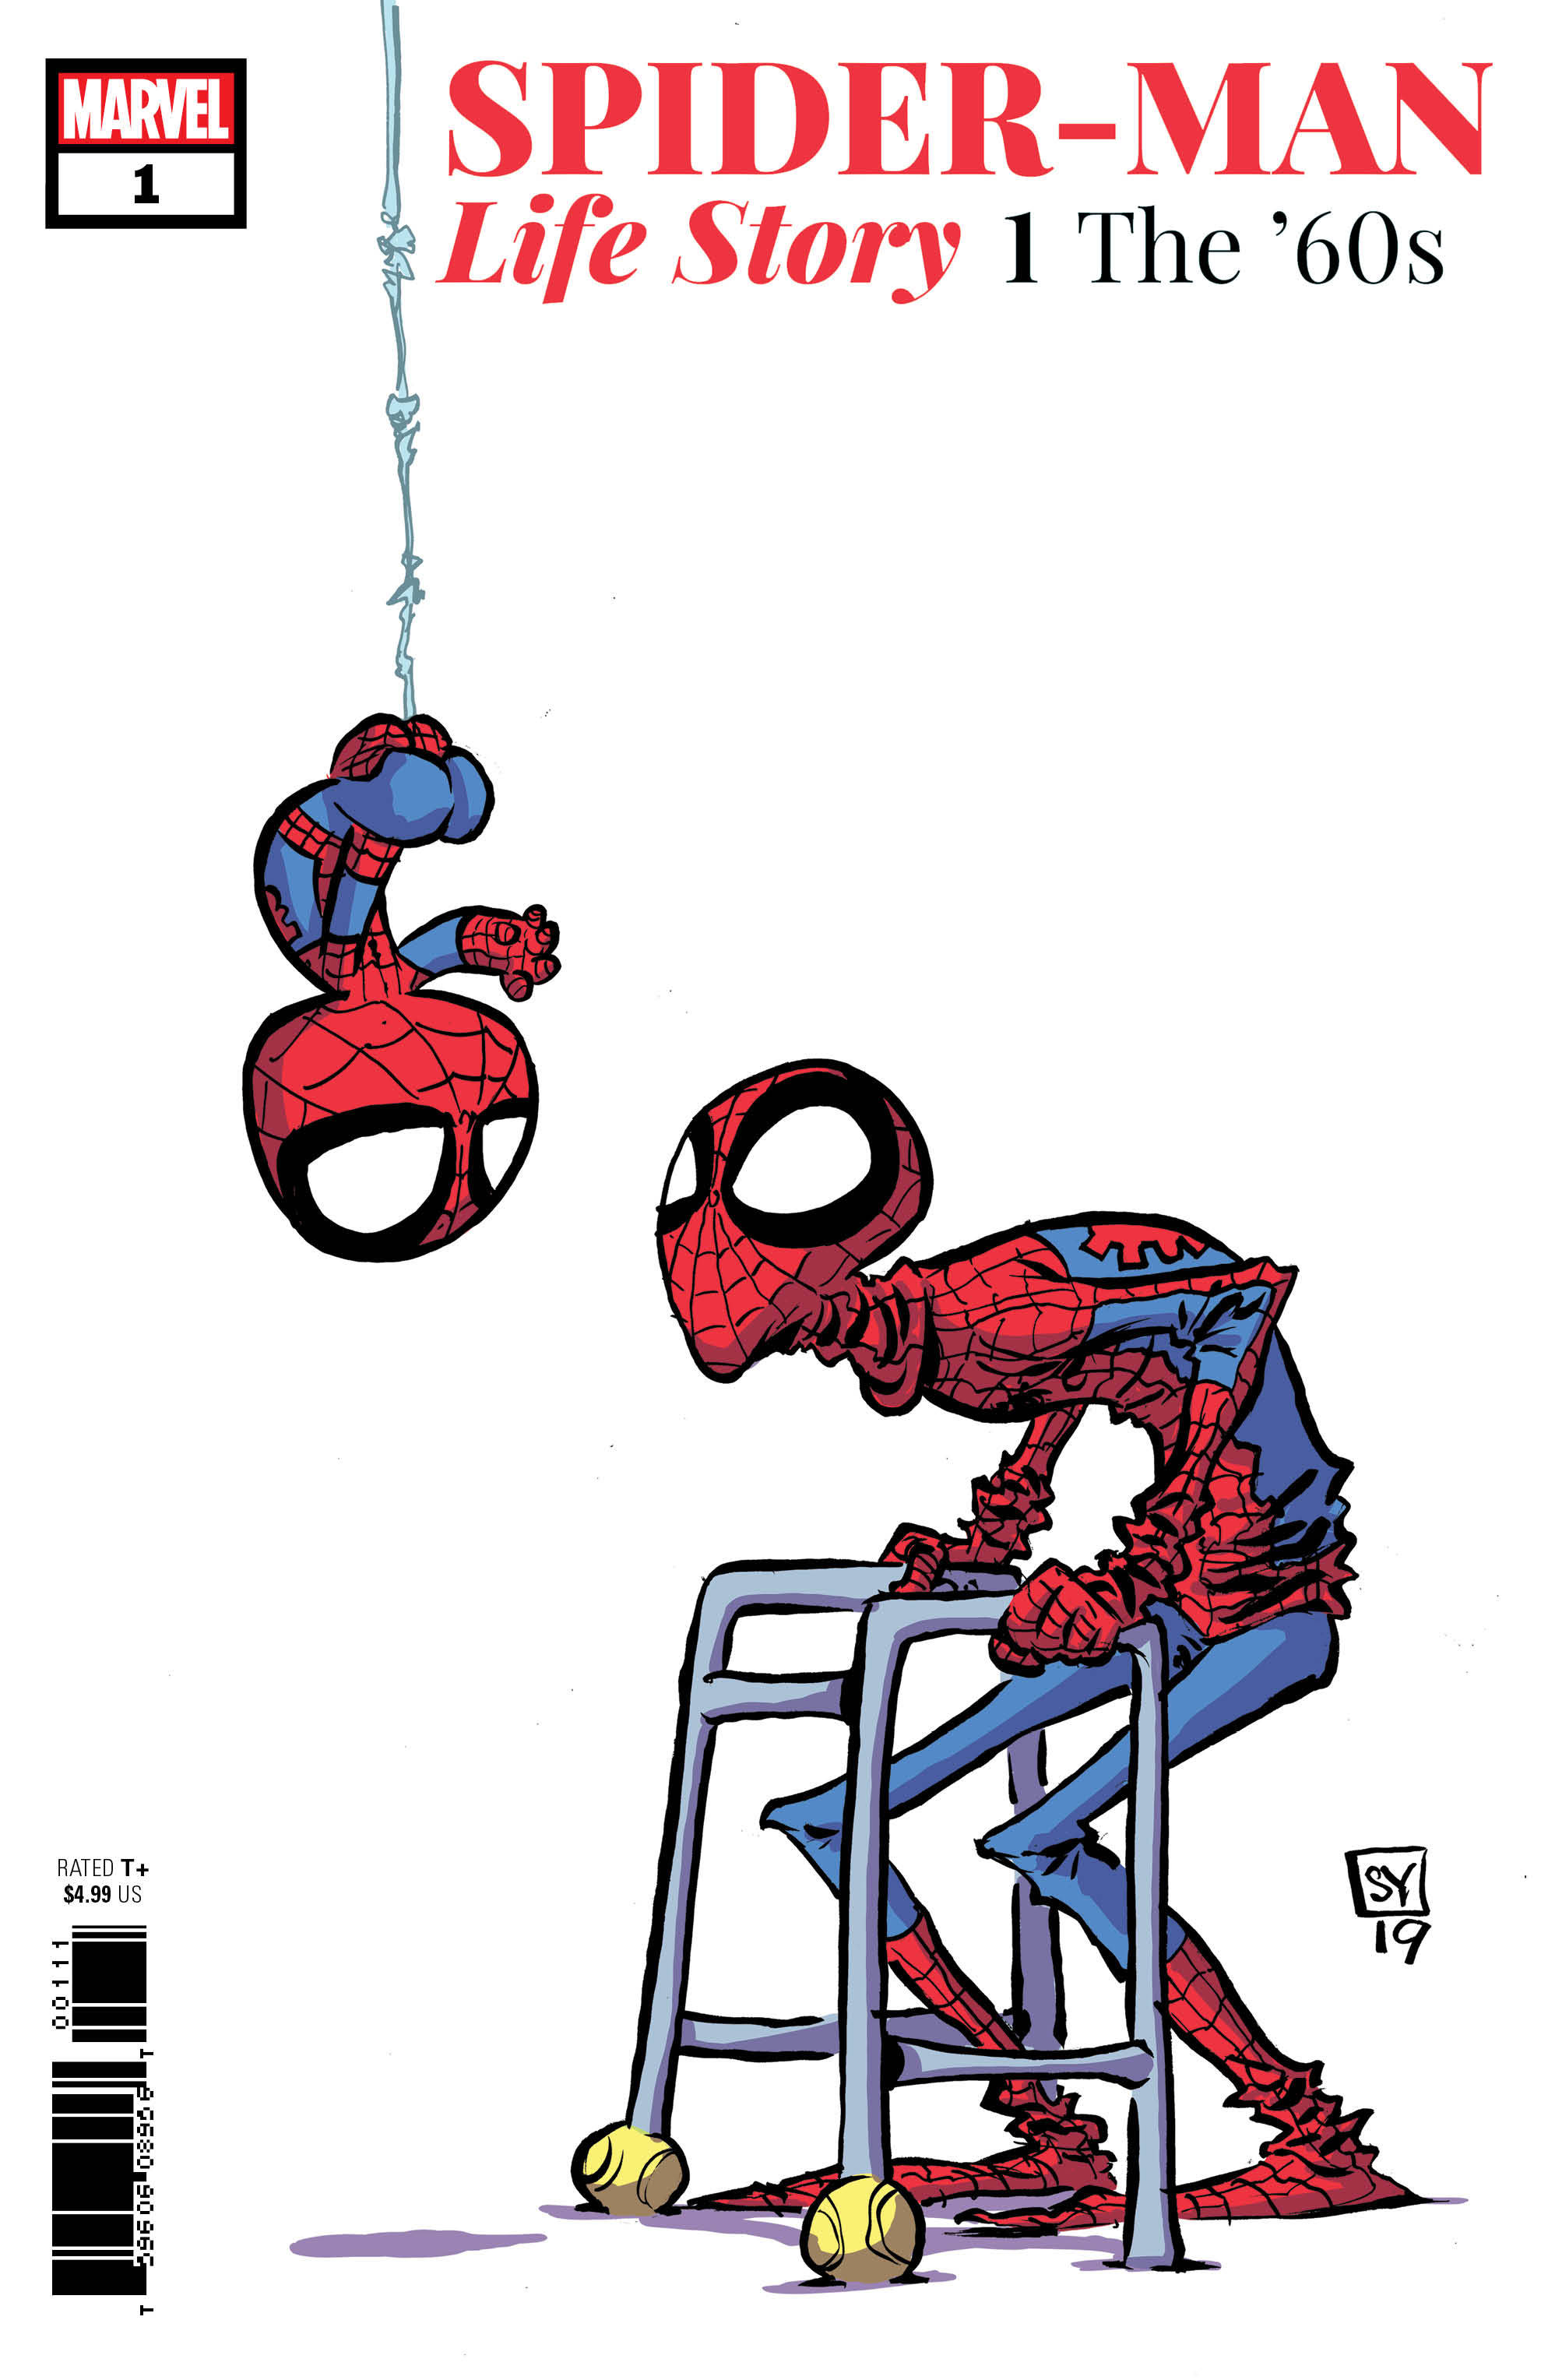 SPIDER-MAN LIFE STORY 1 of 6 YOUNG VAR.jpg